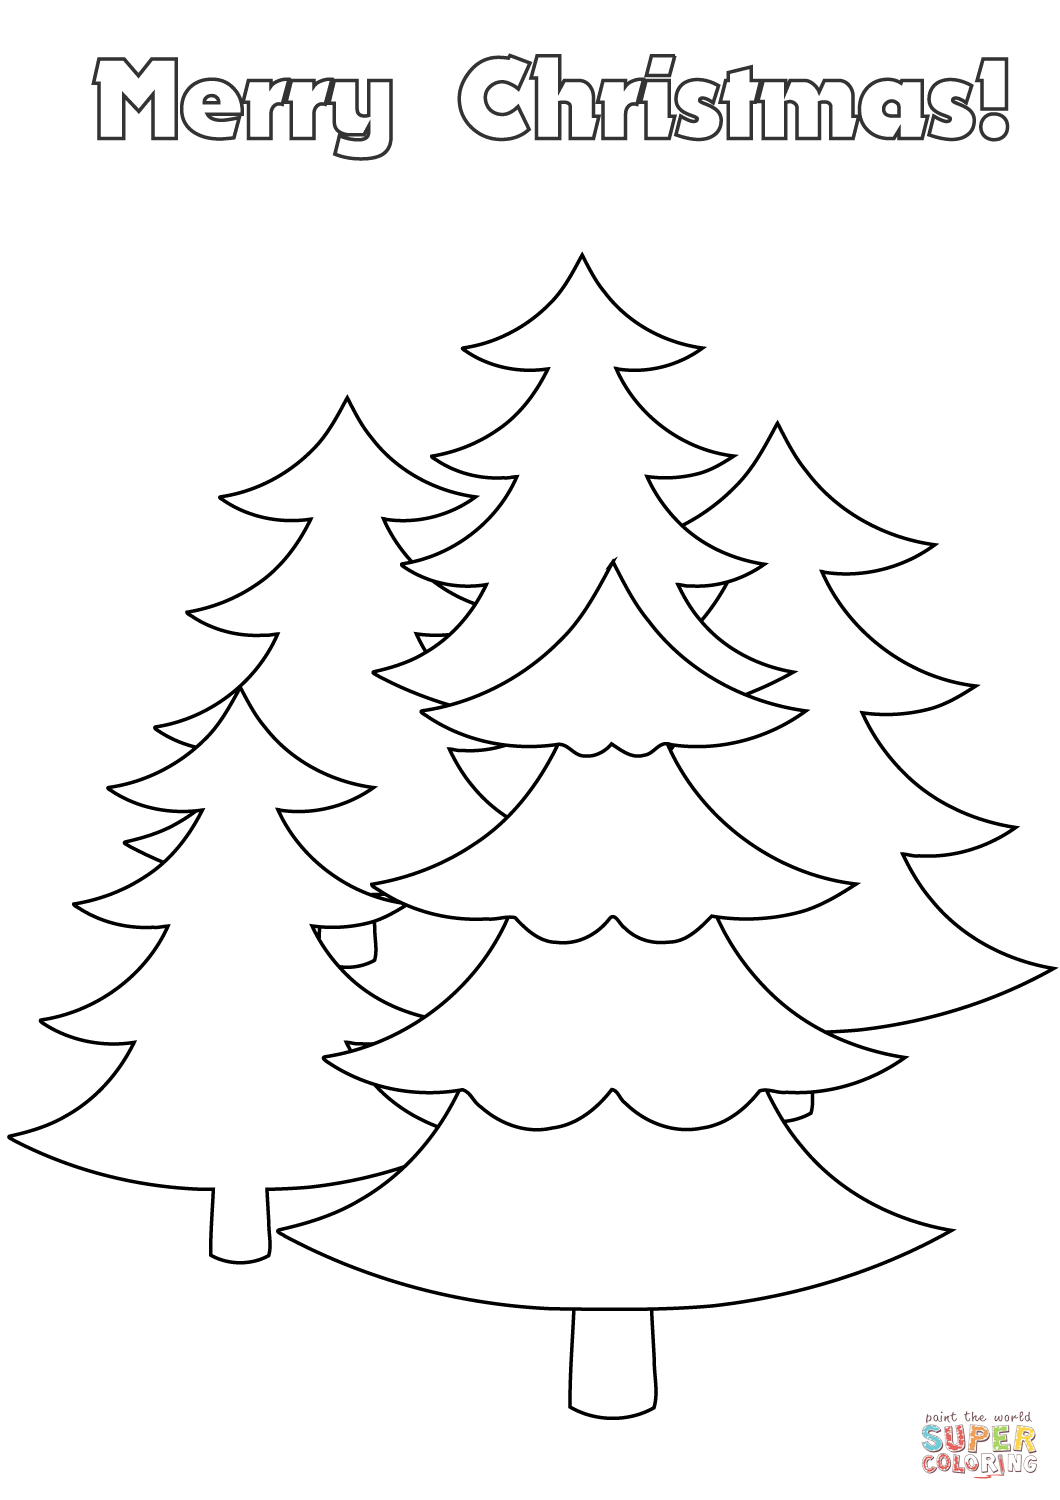 1060x1500 Merry Christmas Card With Trees Coloring Page Free Printable